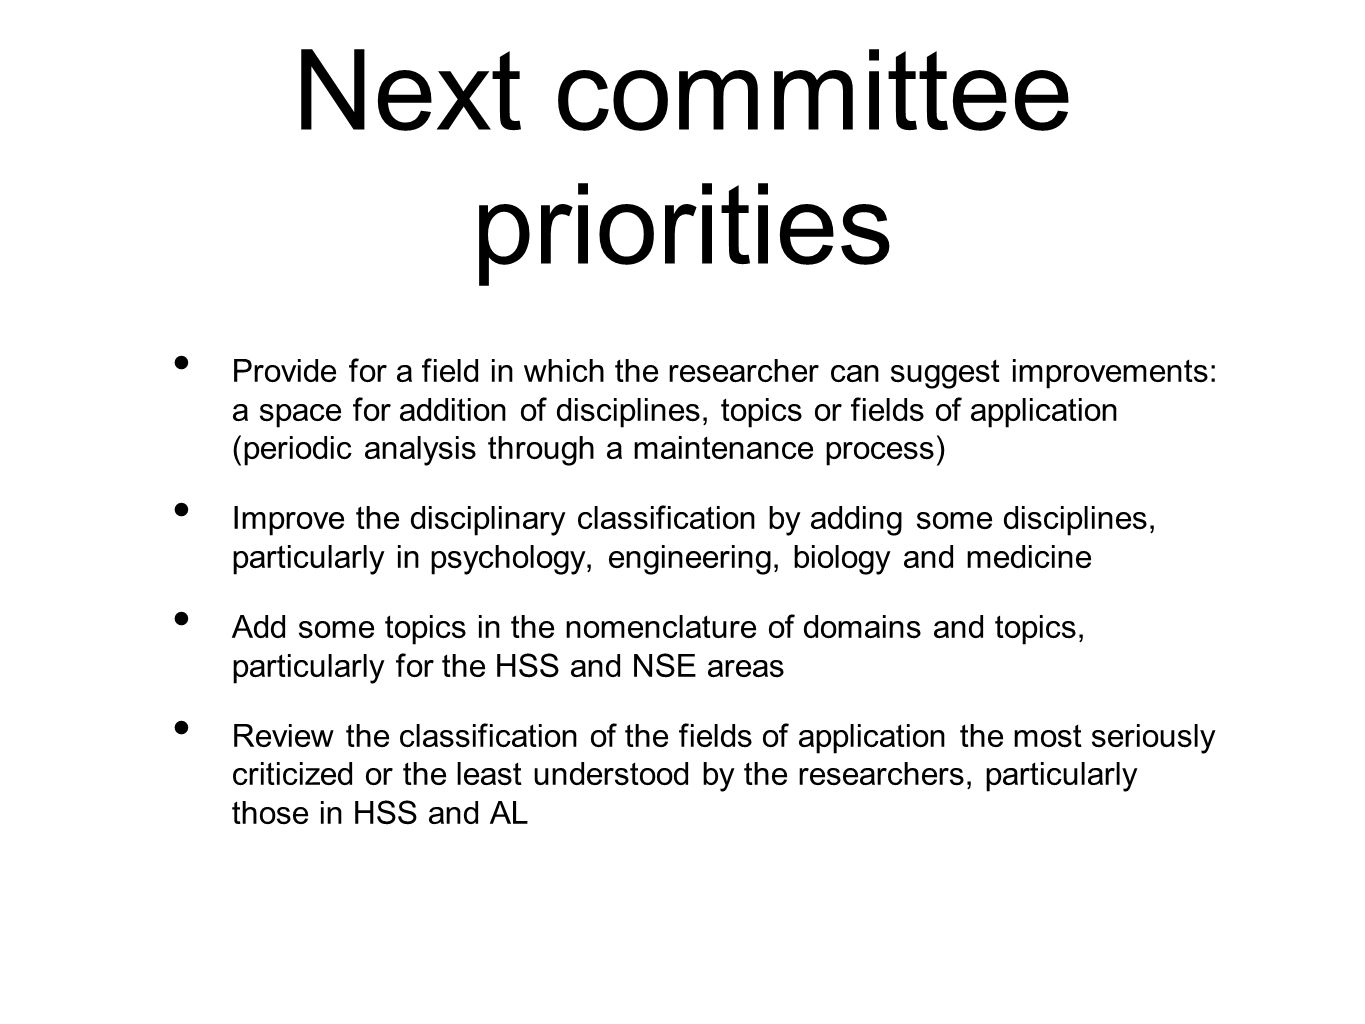 Next committee priorities Provide for a field in which the researcher can suggest improvements: a space for addition of disciplines, topics or fields